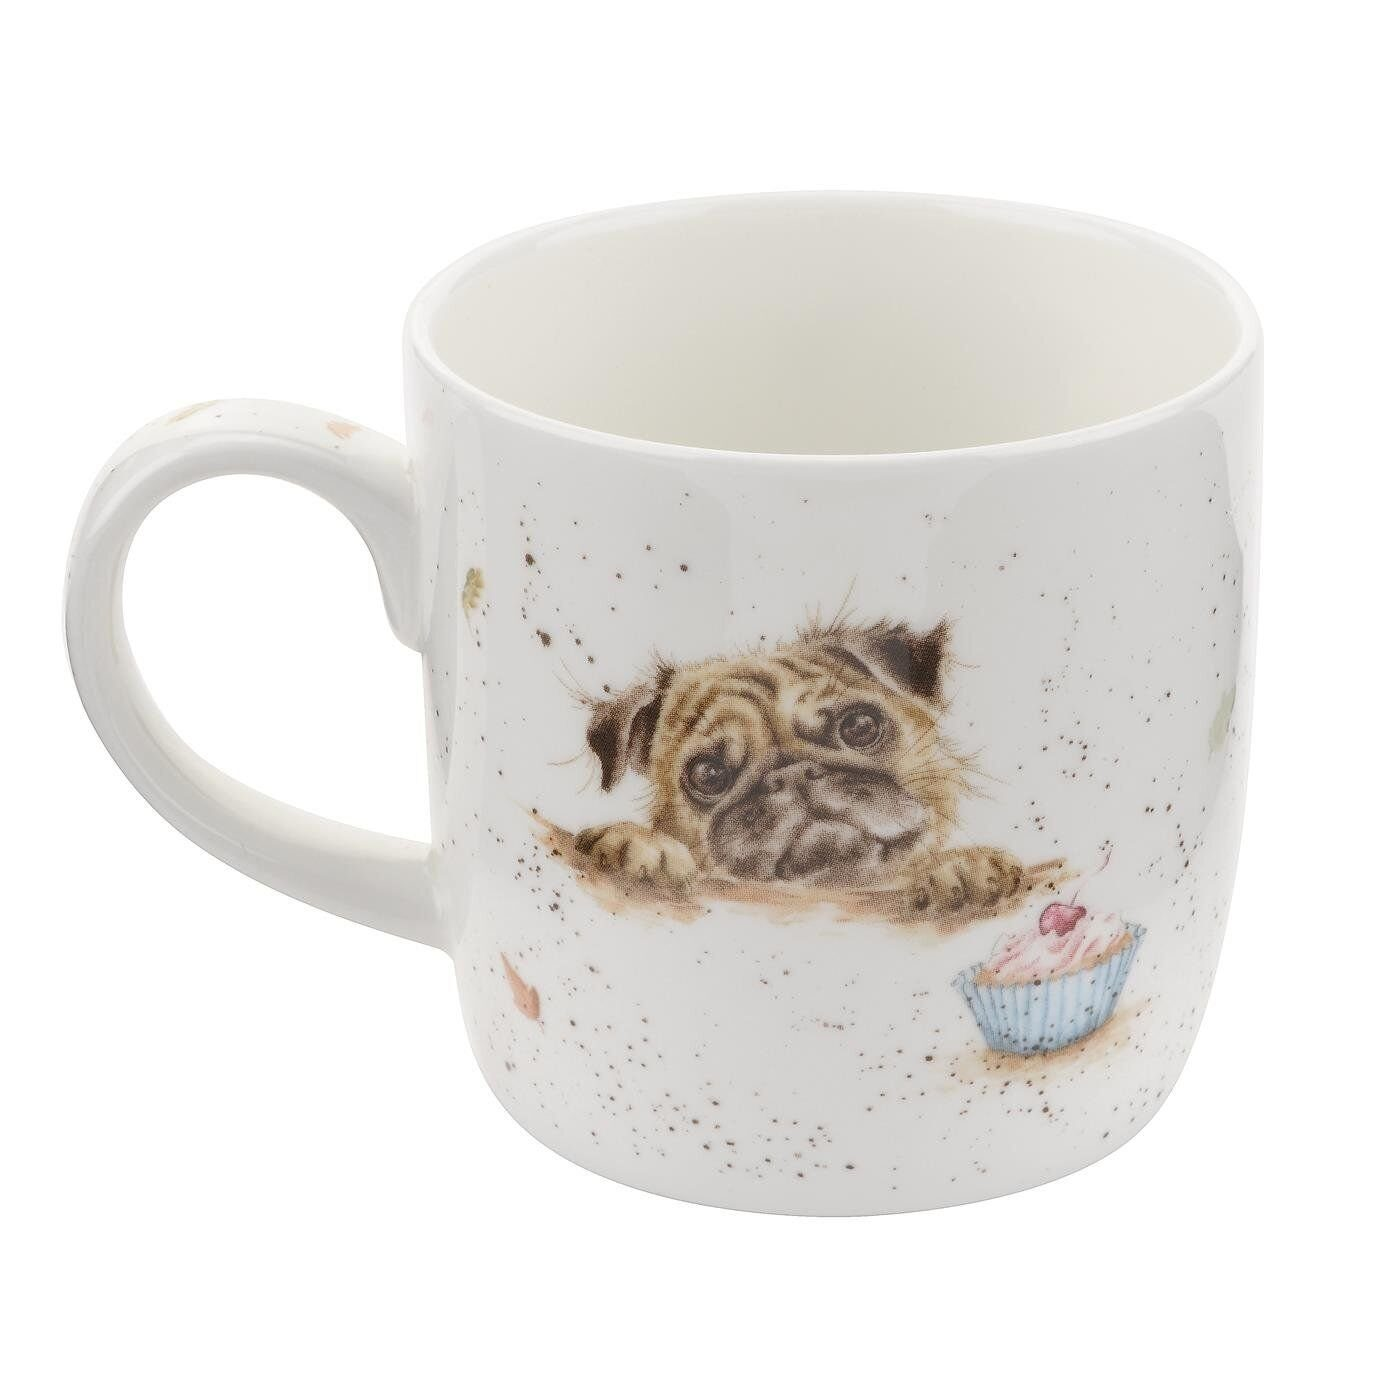 Royal Worcester Wrendale Designs Pug Love Fine Bone China Mug 2);